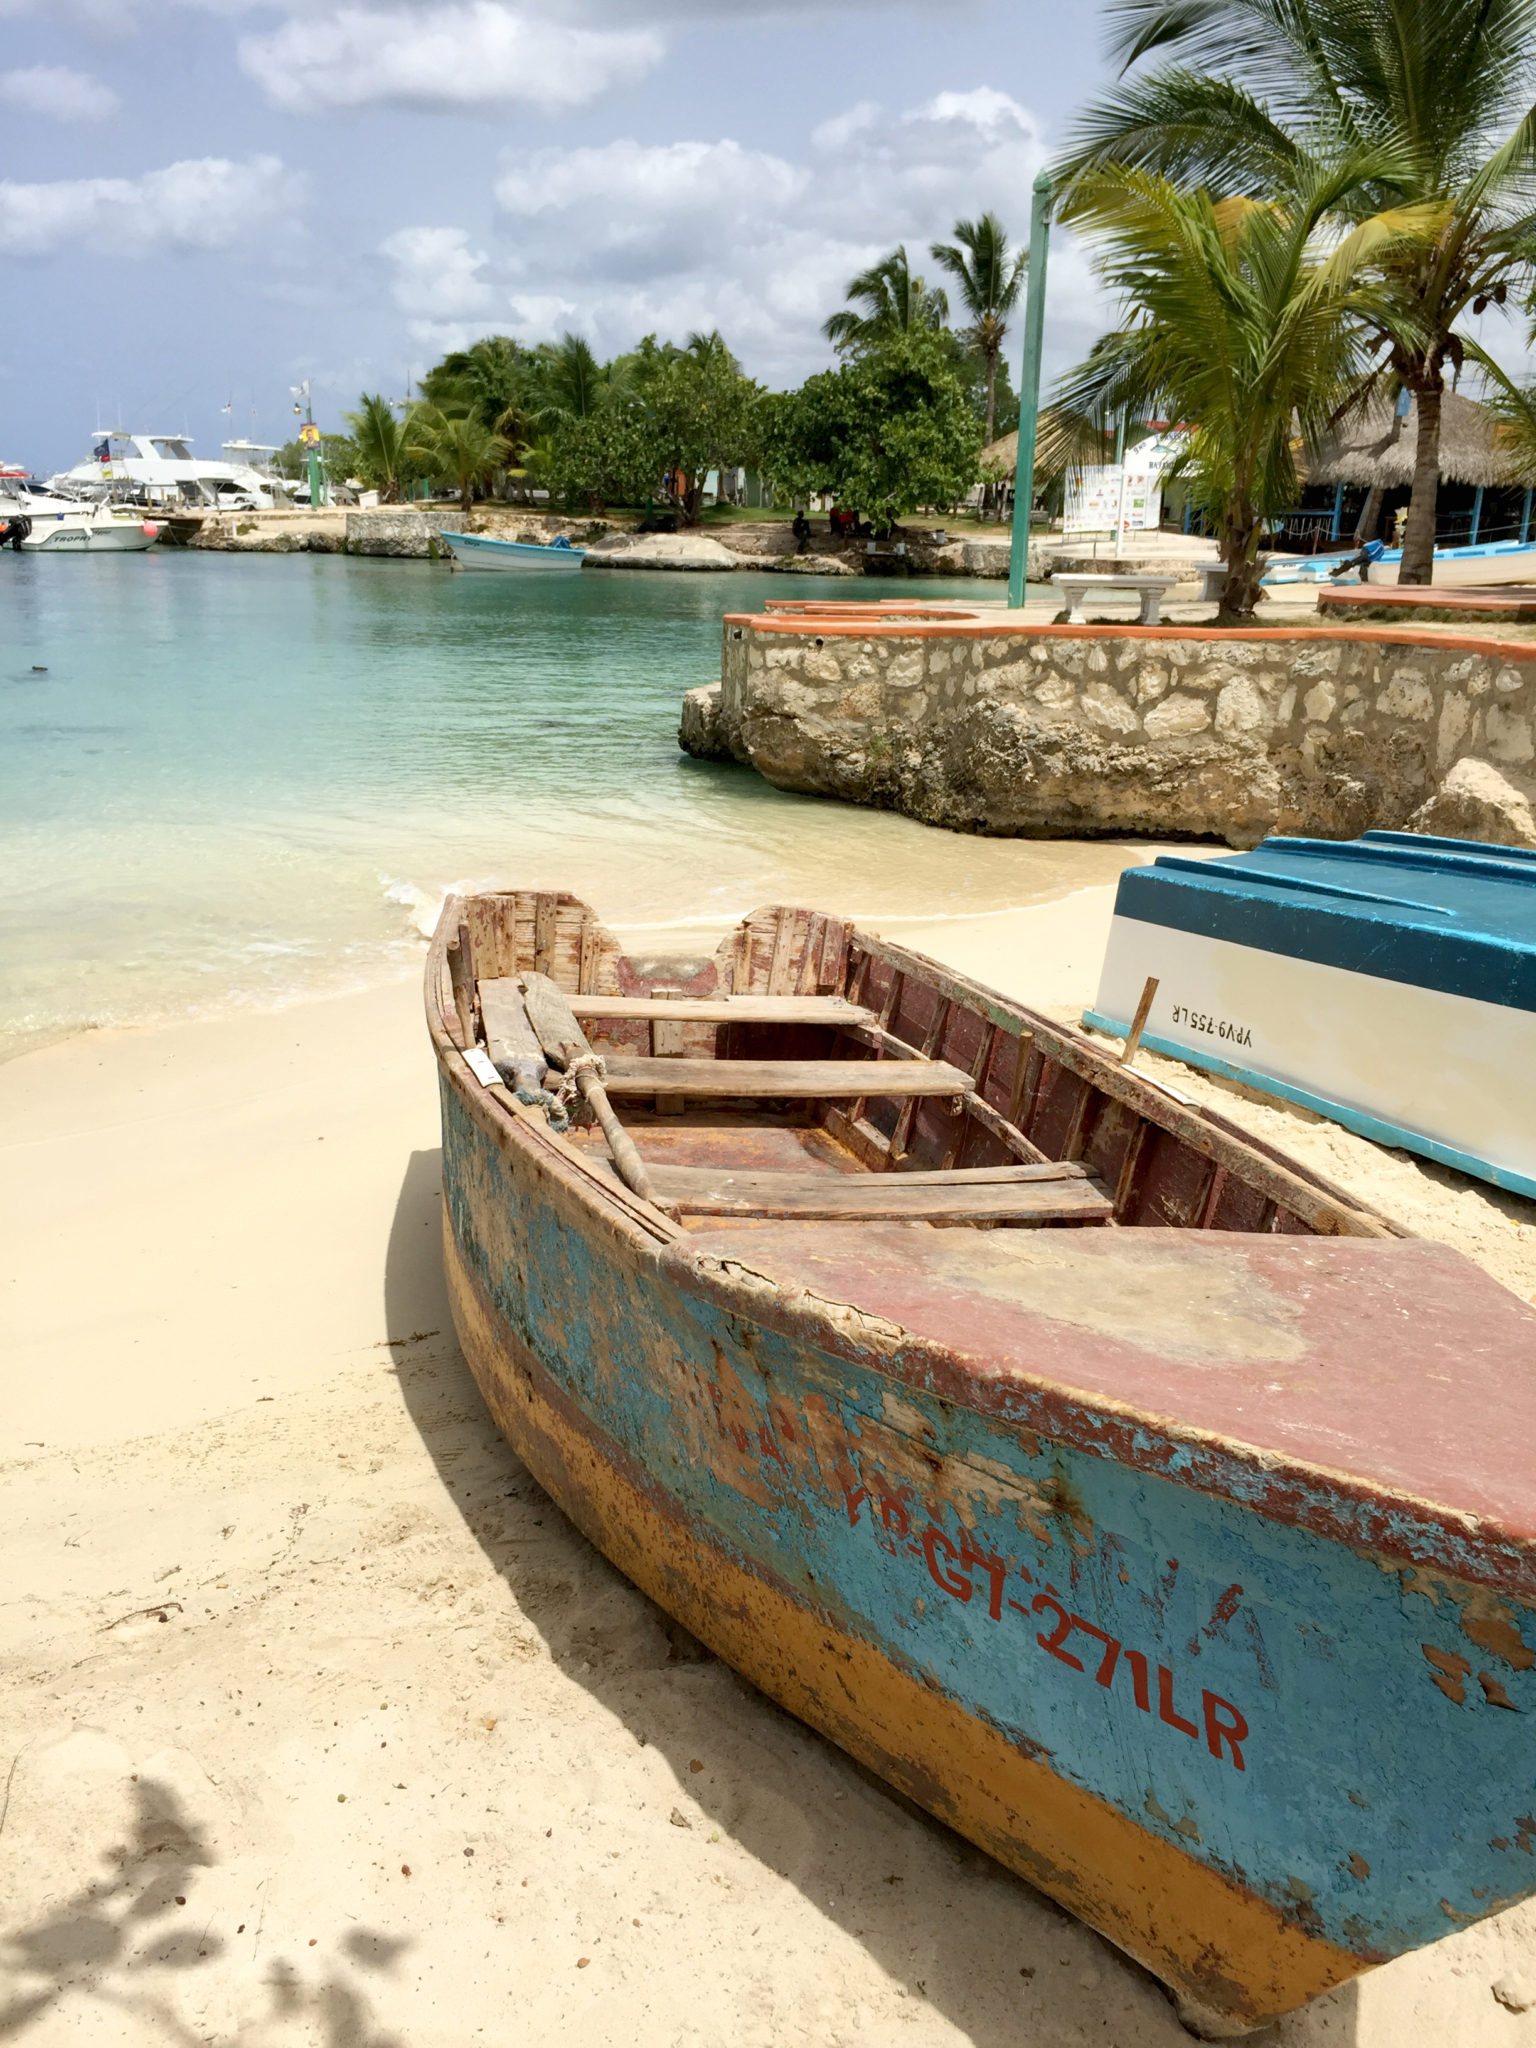 Republique_dominicaine_roadtrip_bayahibe_bateau_pecheur